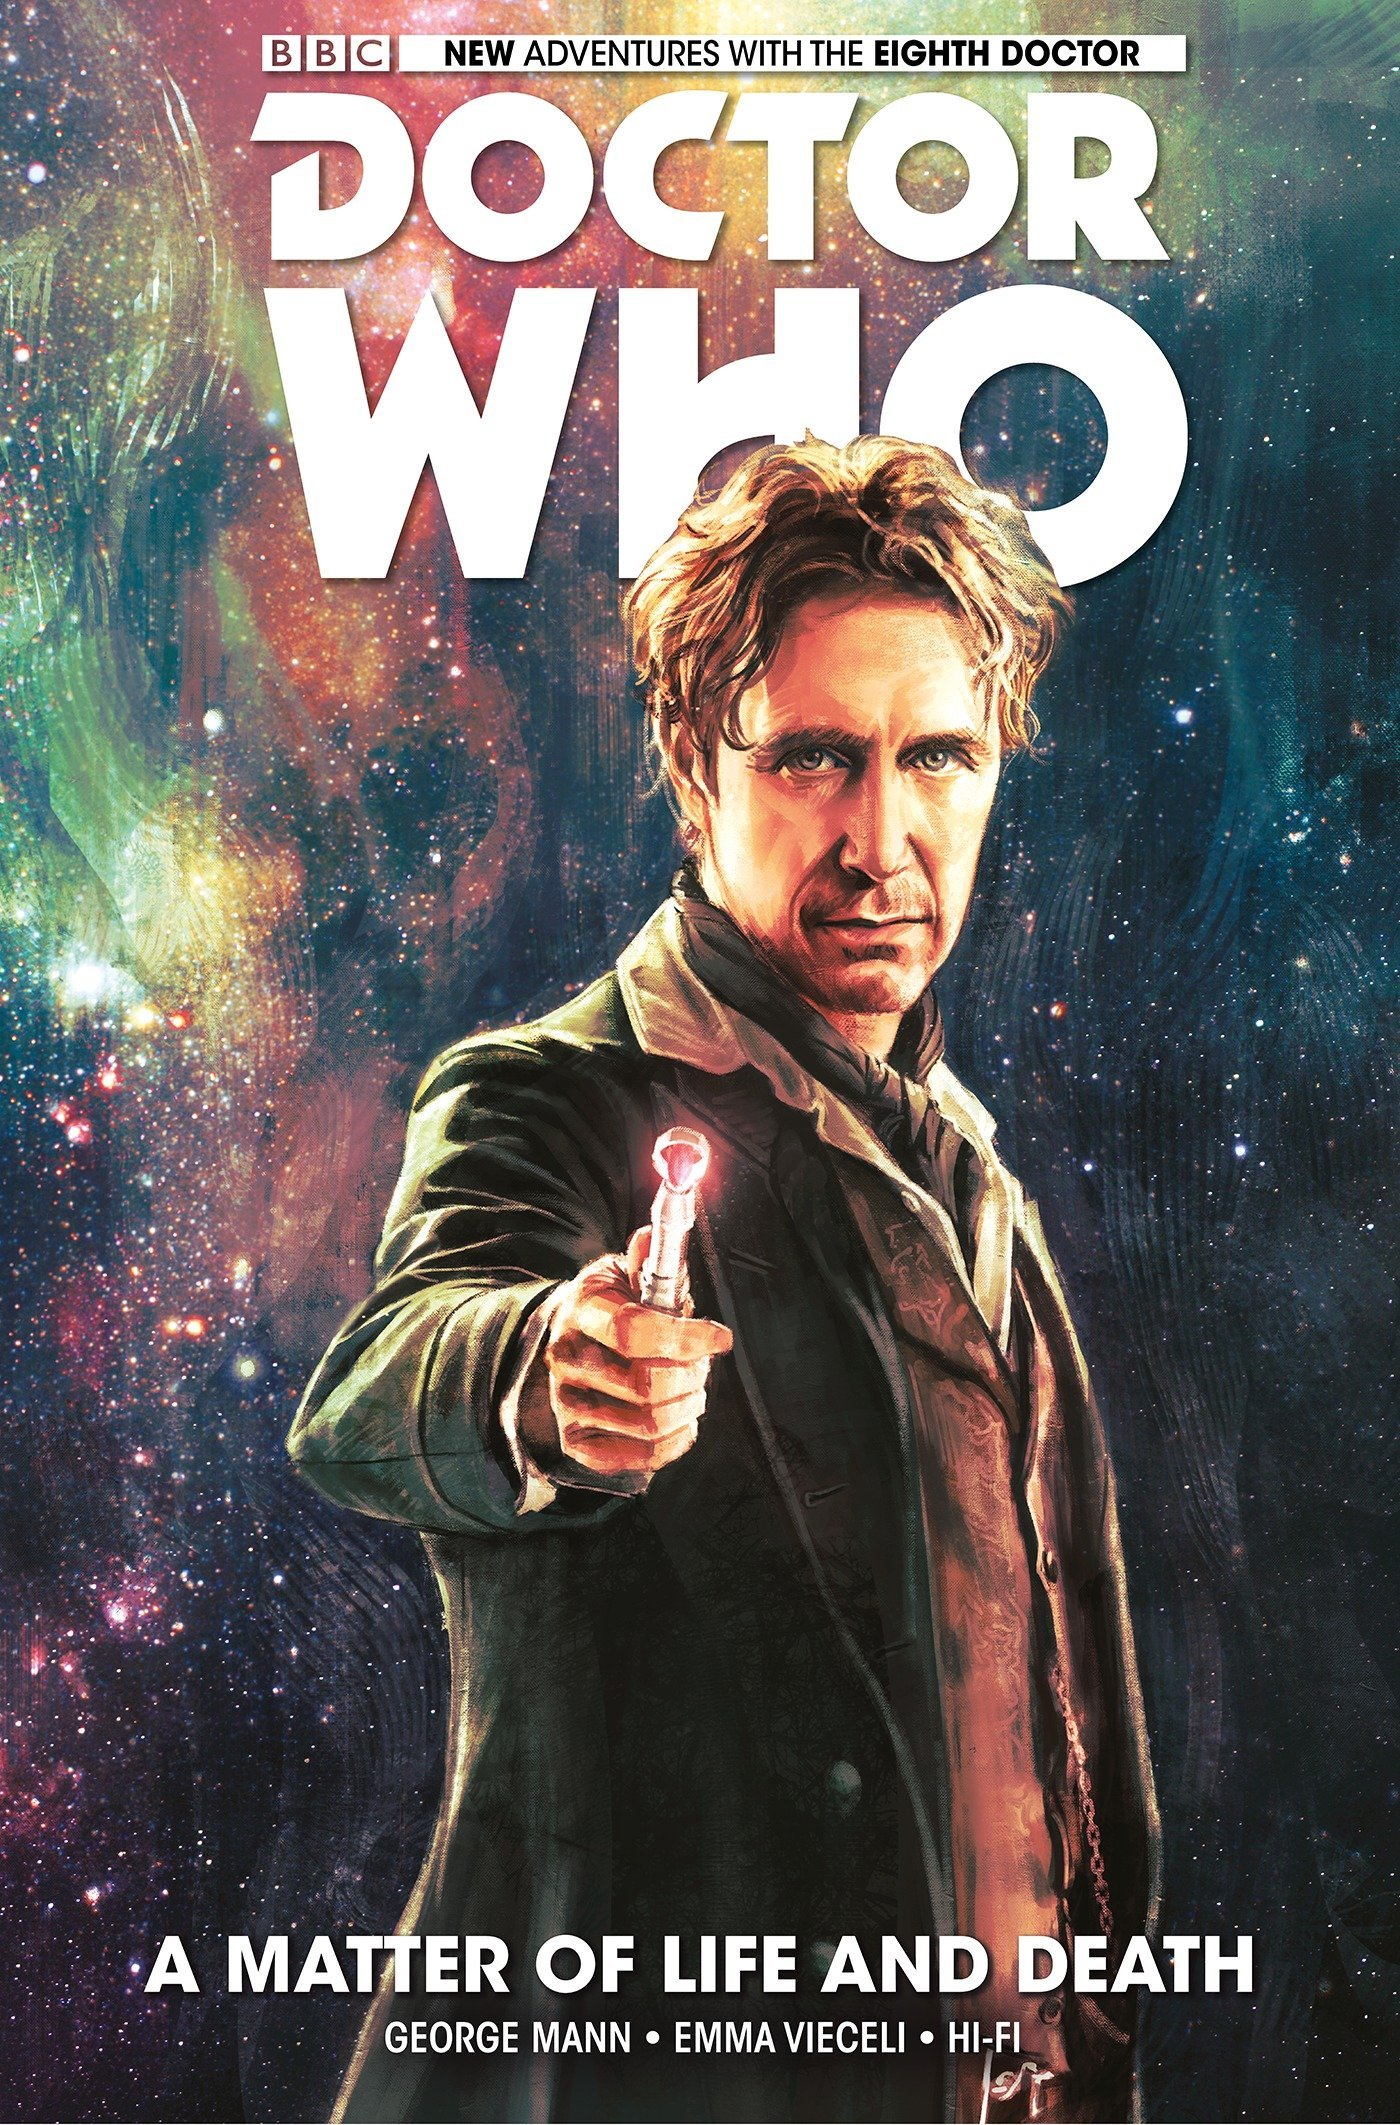 Doctor Who: The Eighth Doctor Volume 1 - A Matter of Life and Death PDF